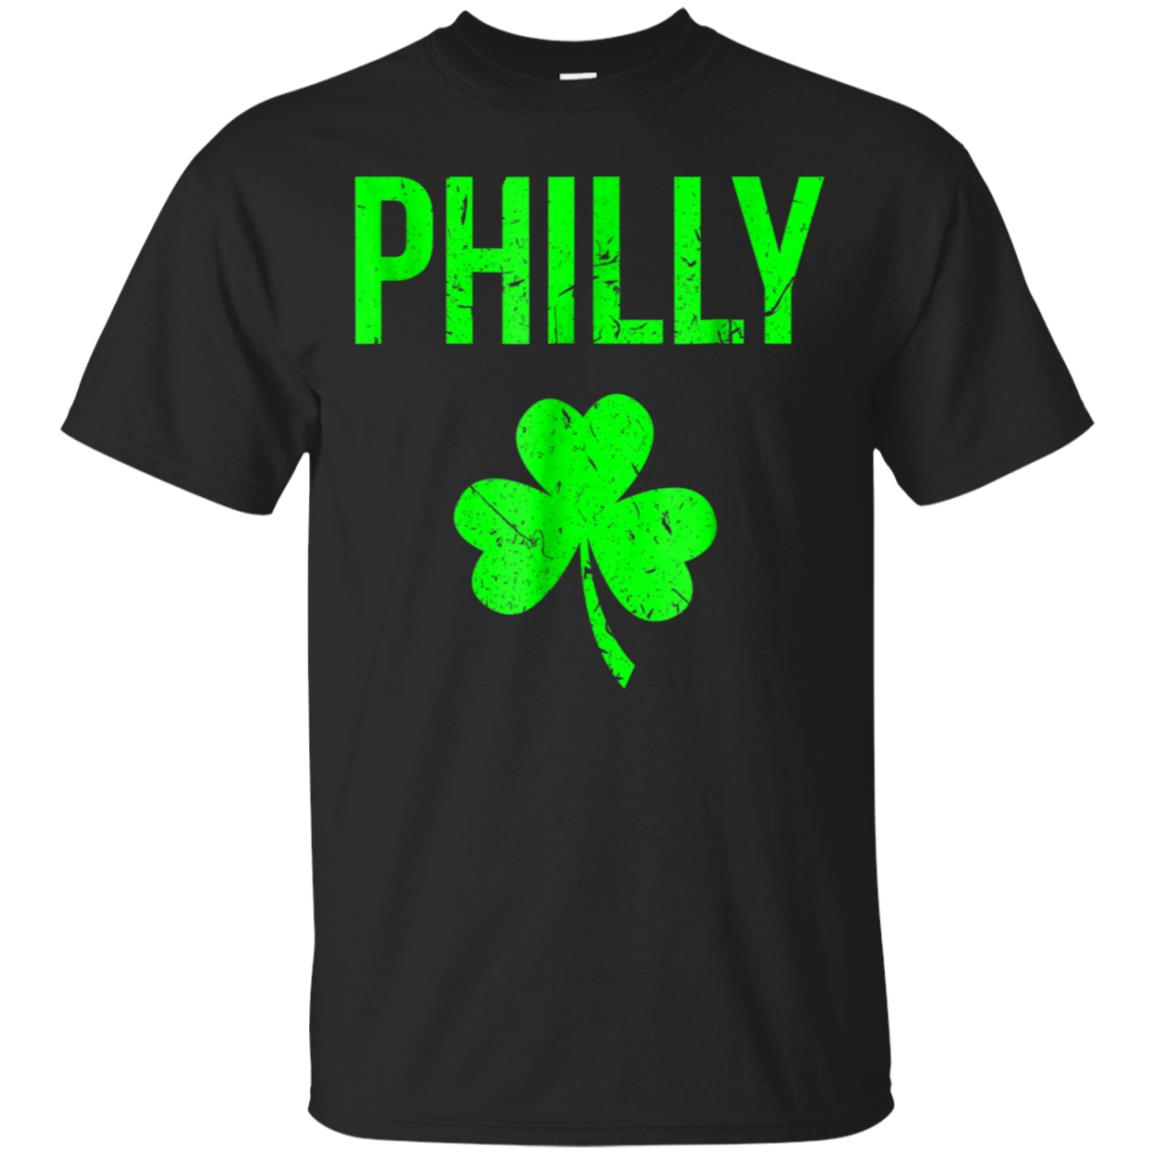 Philly Shamrock Shirt Irish St Patricks Day Philadelphia Tee 99promocode